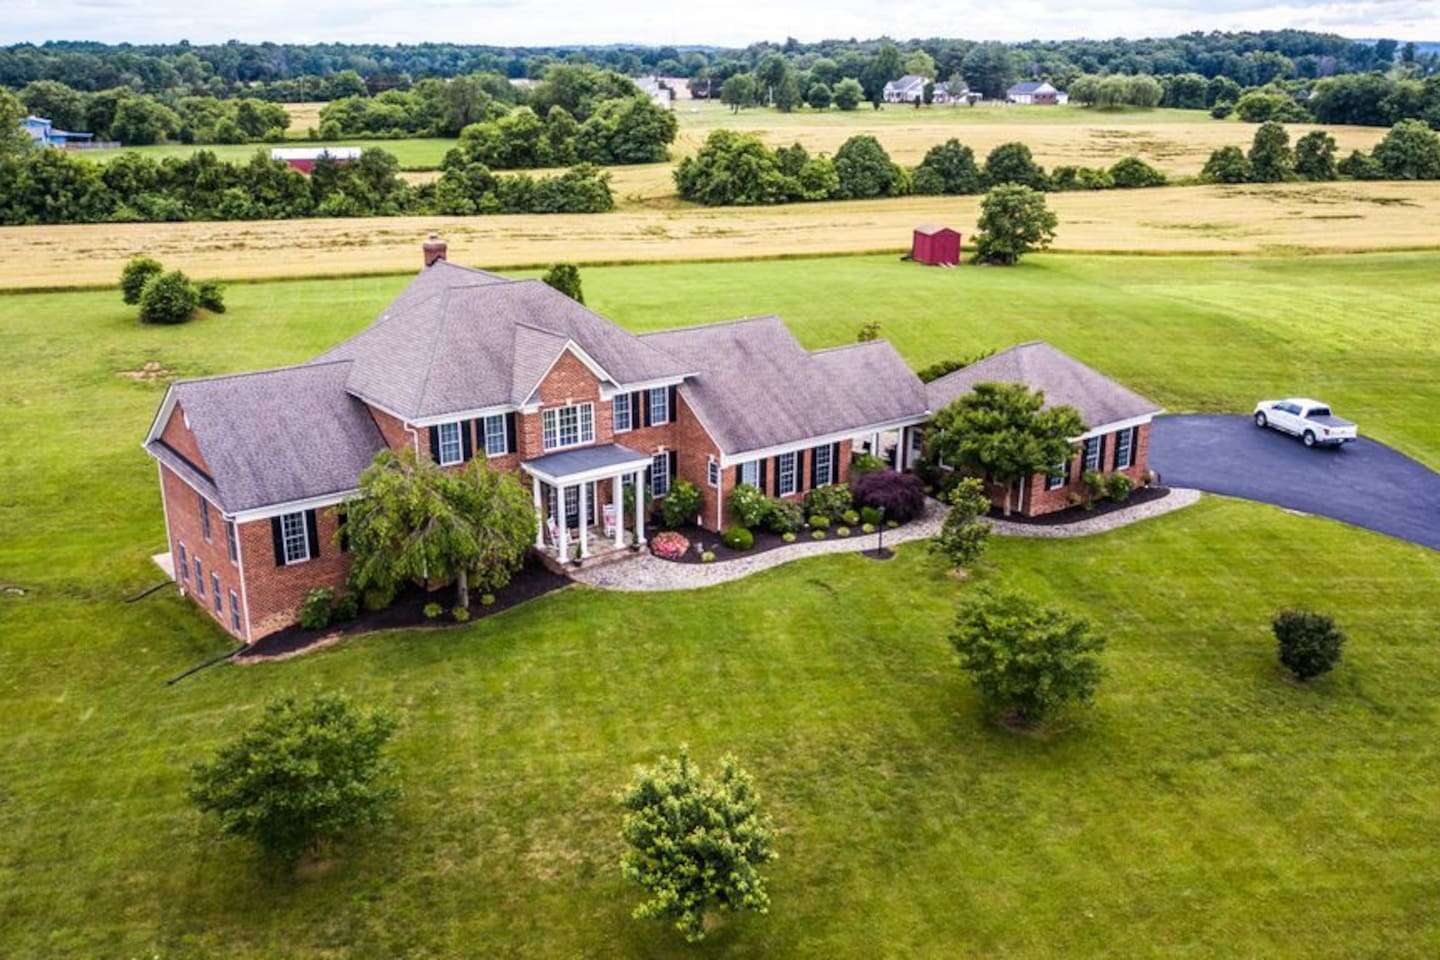 5 acre estate backing up to rolling pastures